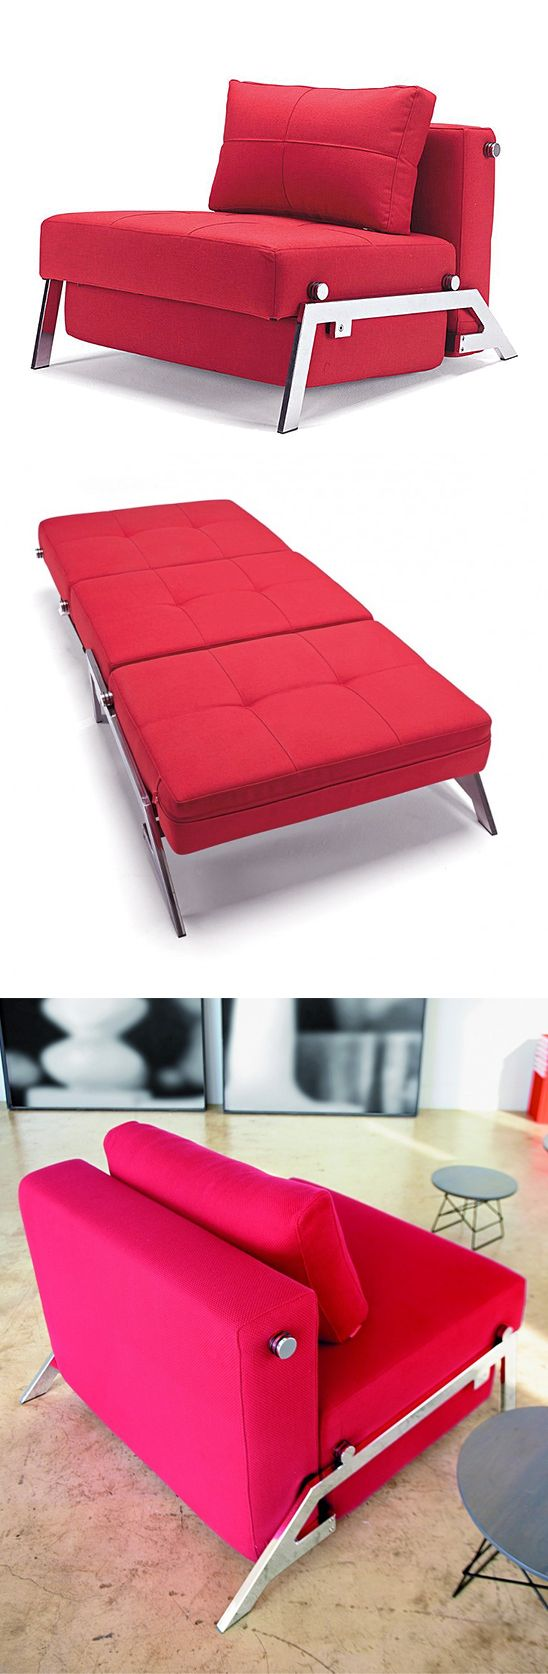 Best 25 Fold out beds ideas on Pinterest